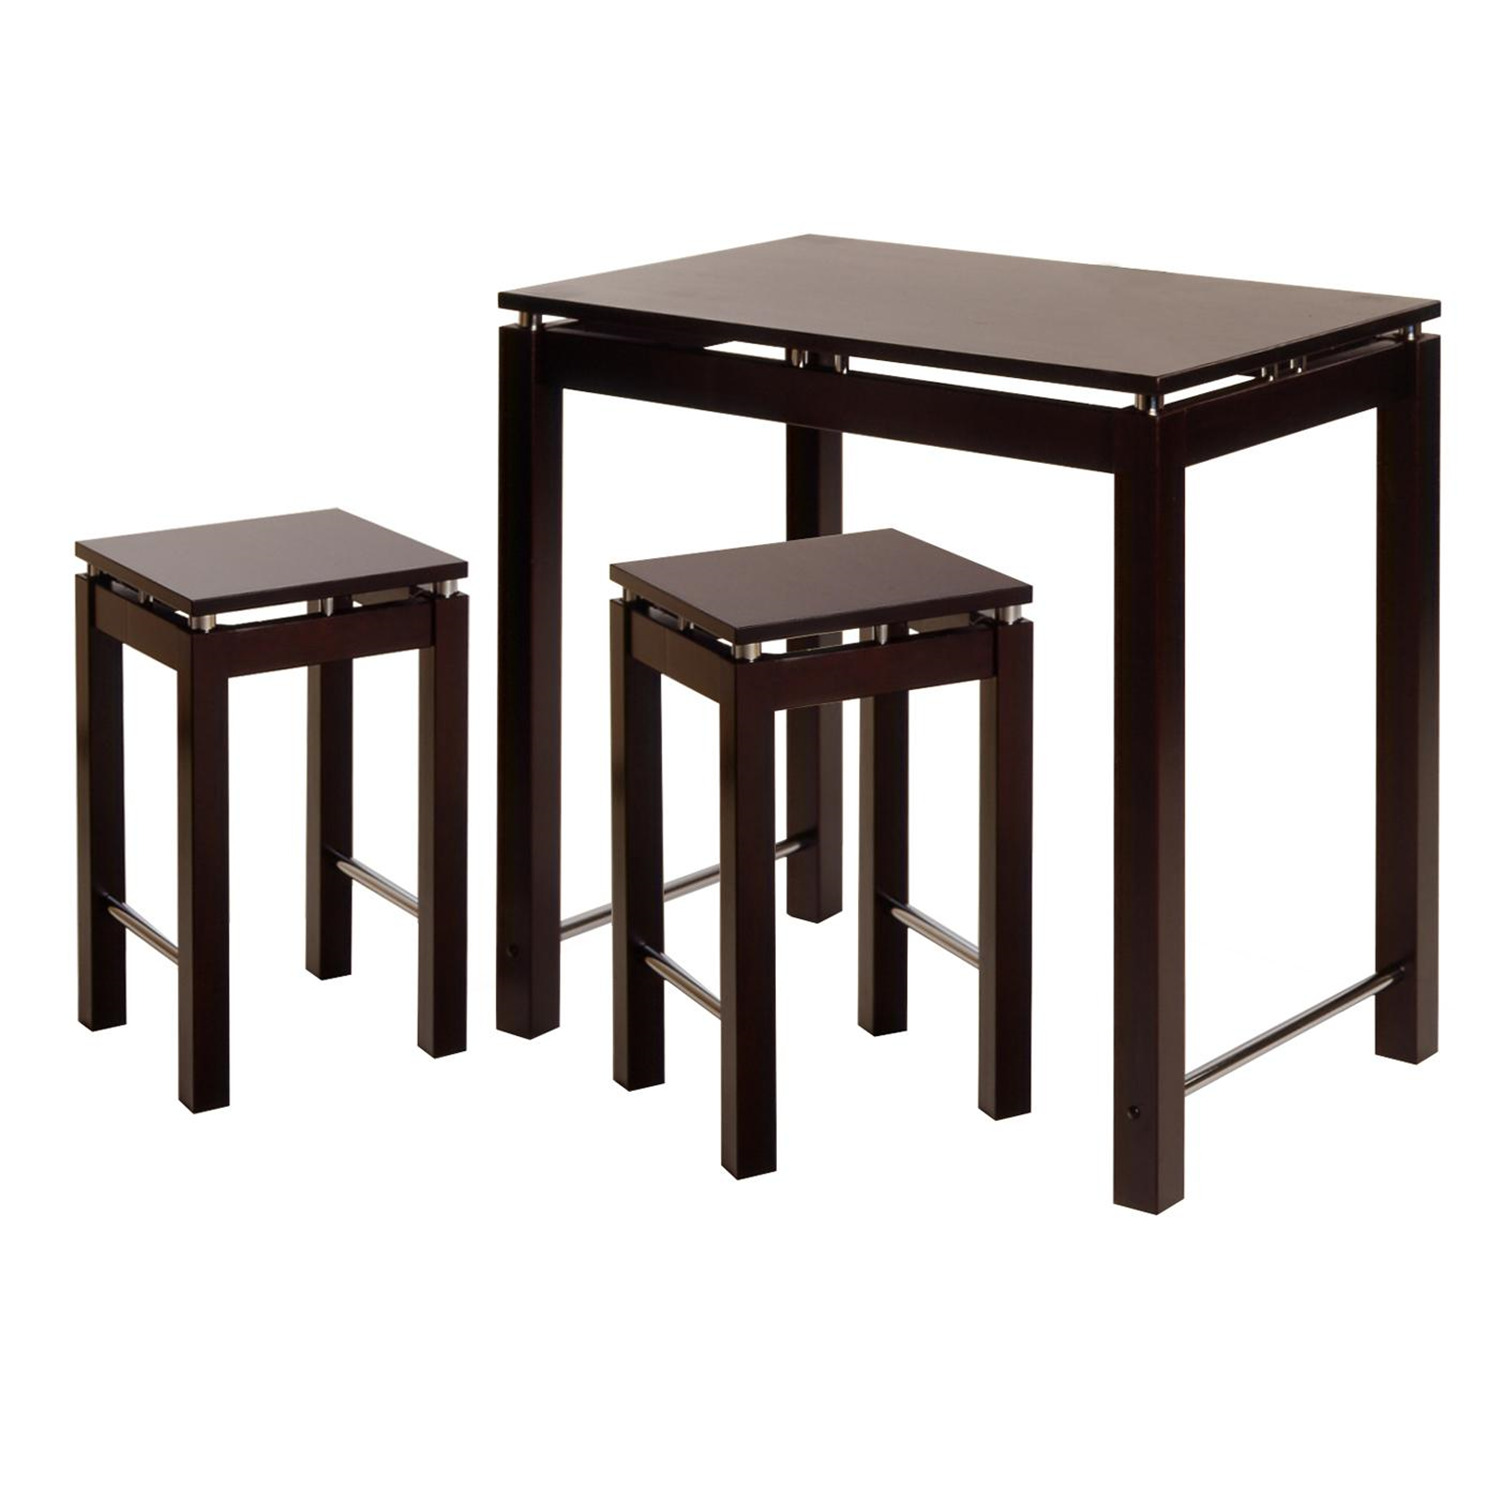 Winsome Linea 3pc Pub Kitchen Set Island Table With 2